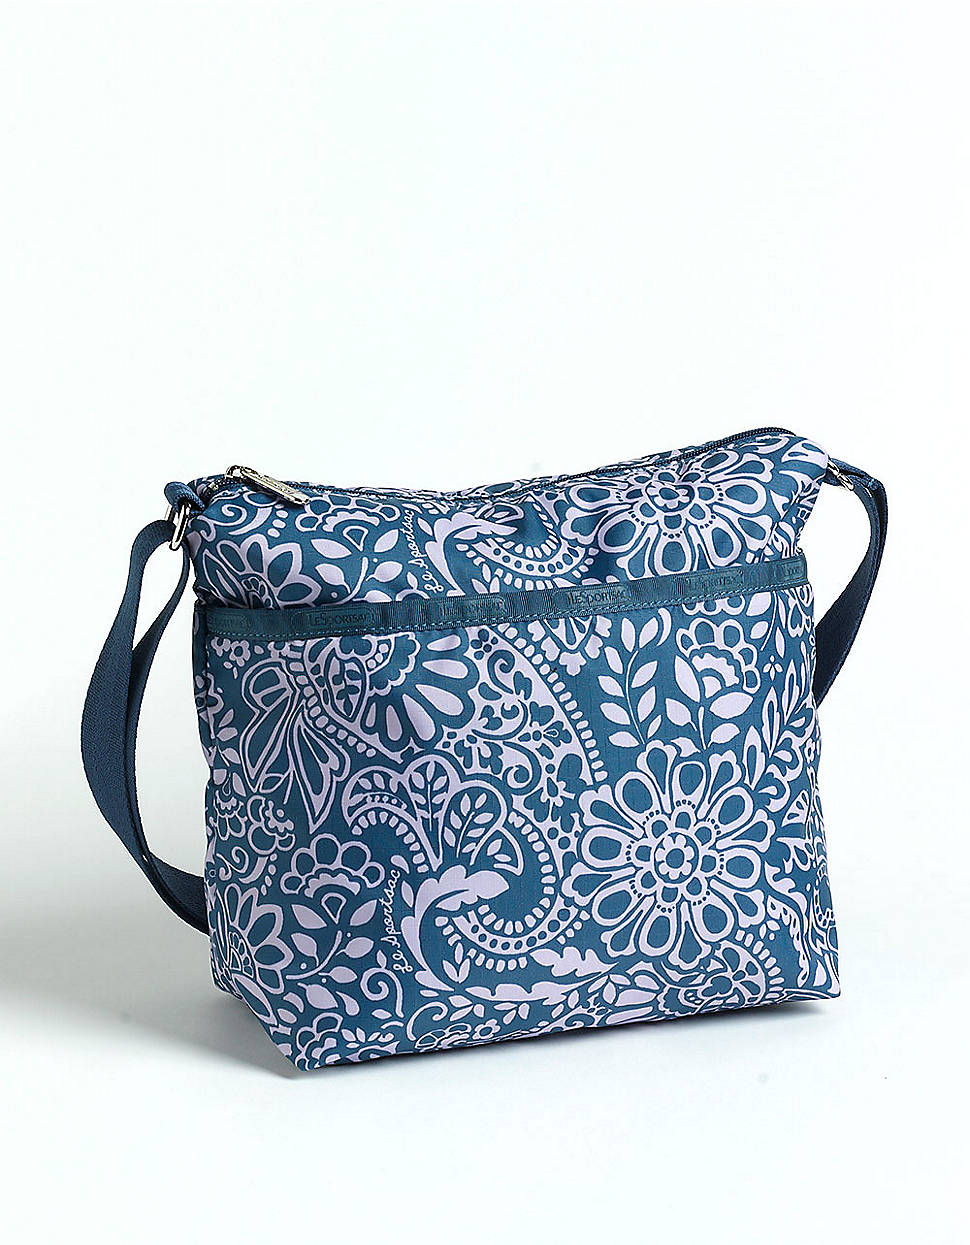 60f9dc230b94 Lesportsac Small Cleo Crossbody Bag in Blue - Lyst